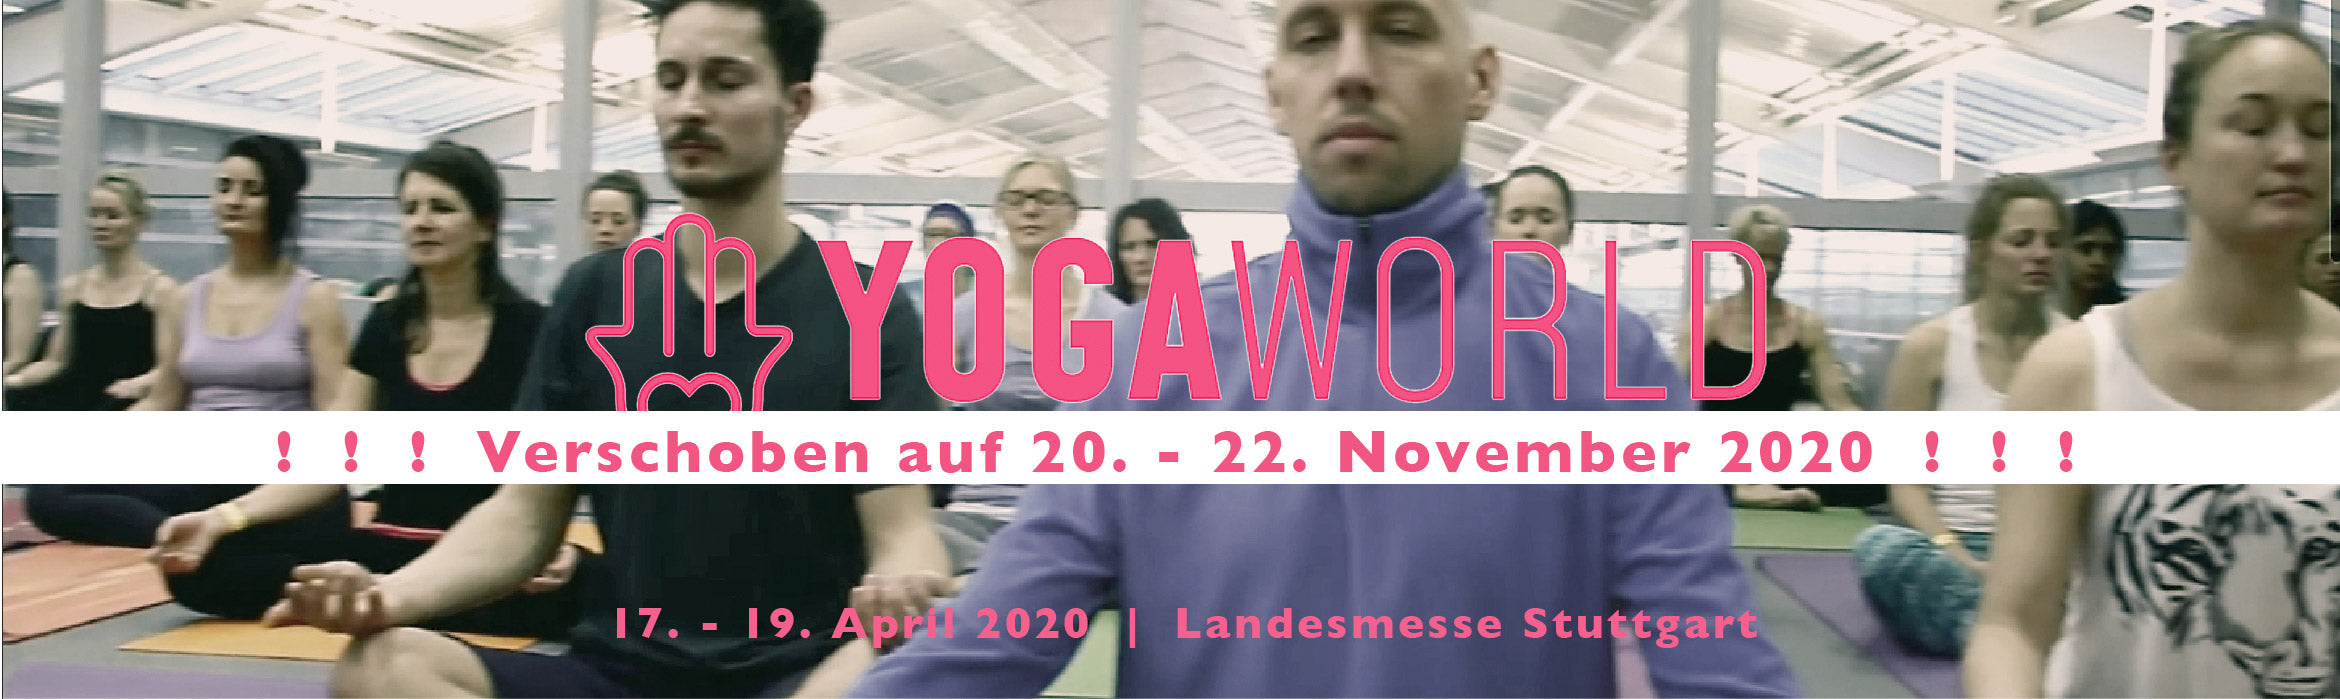 Yoga World Stuttgart 2020